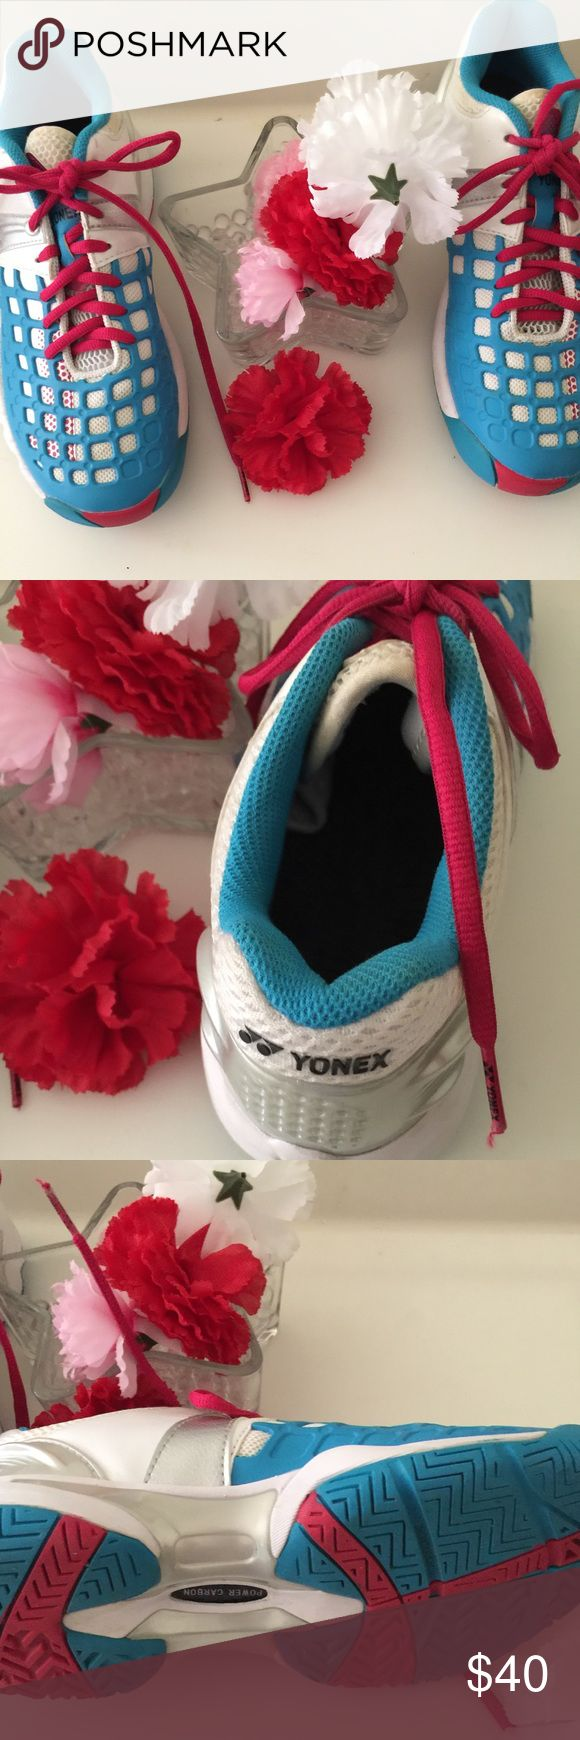 Yonex Women's Power Cushion Pro Tennis Shoes. Yonex Women's Power Cushion Pro Tennis Shoes White and Blue with fuchsia lace. In excellent preowned condition. Size: 7.5 Yonex Shoes Sneakers